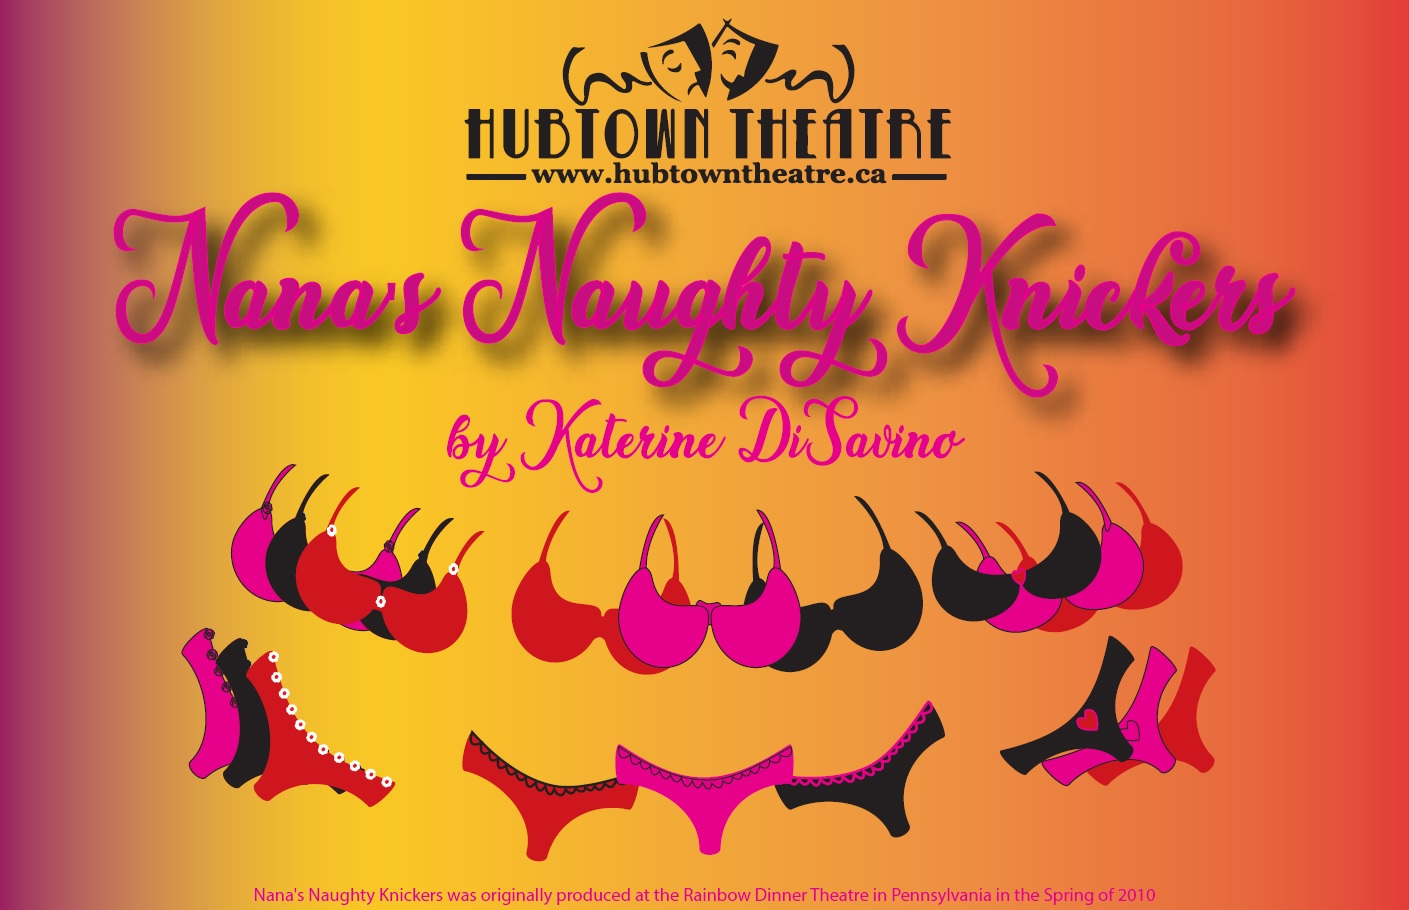 hubtown theatre presents nana s naughty knickers marigold cultural